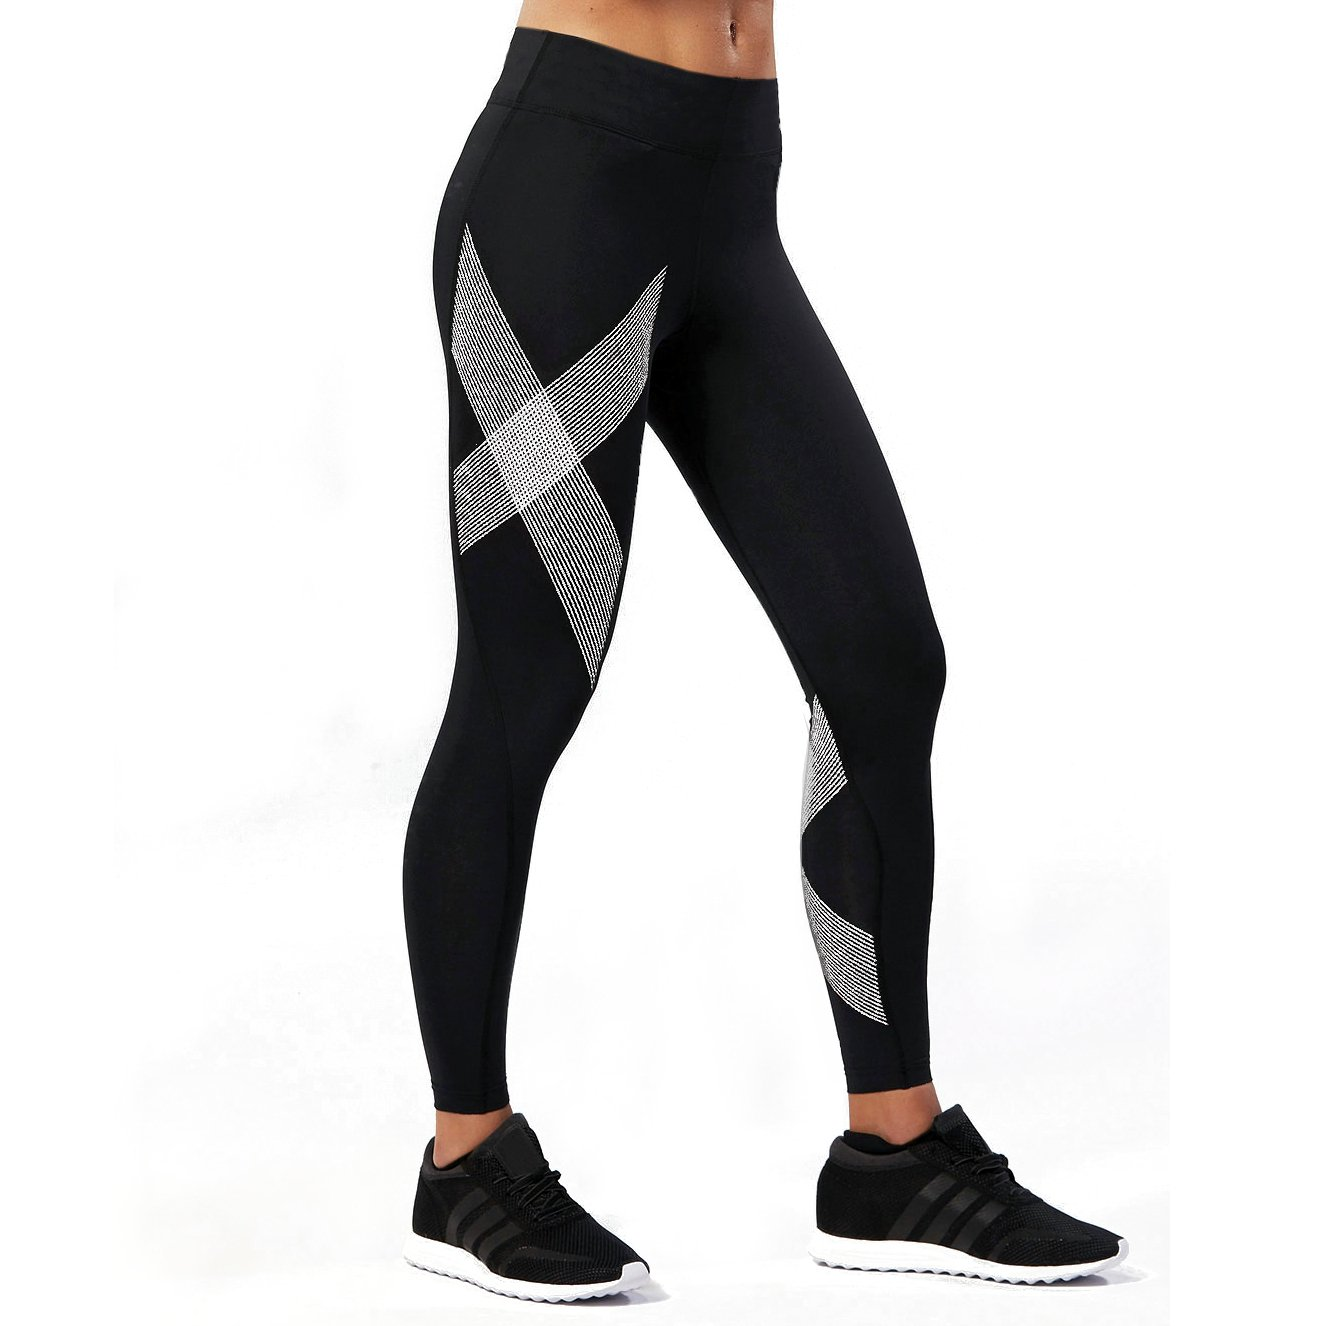 2XU Women's Mid-Rise Compression Tights, Black/Striped White, X-Small